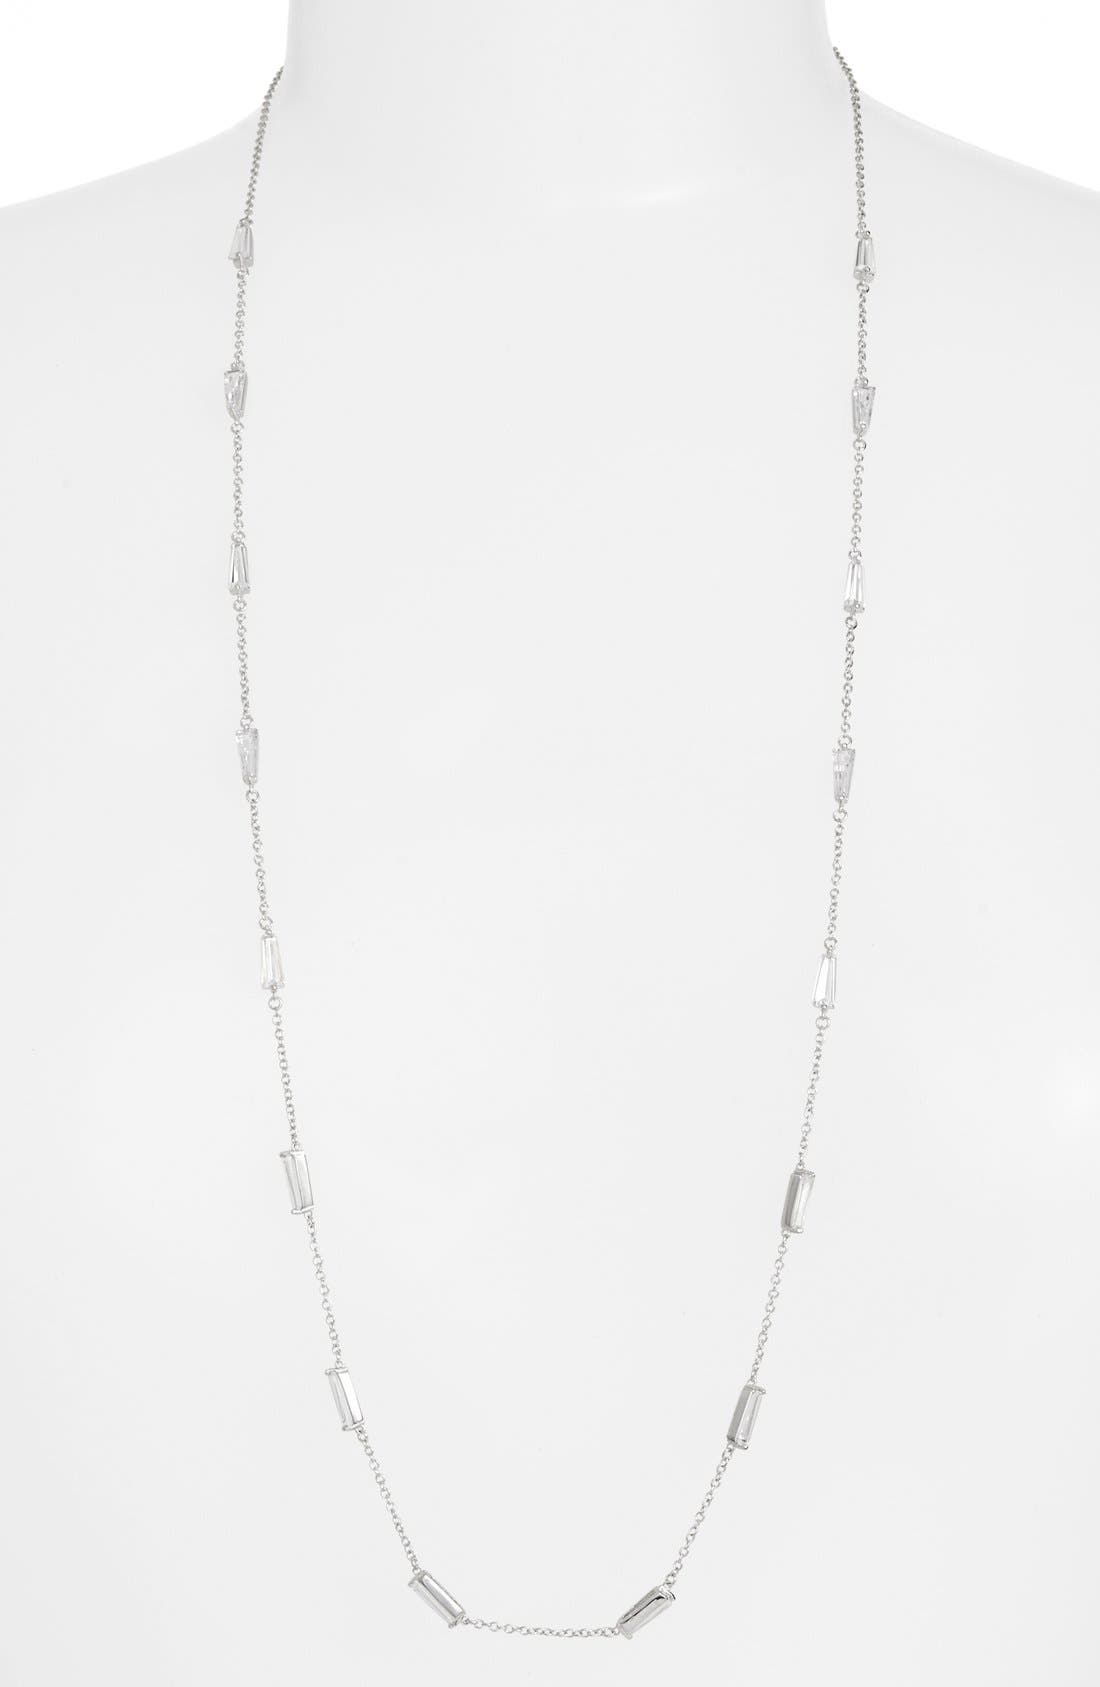 Main Image - CZ by Kenneth Jay Lane Long Baguette Cubic Zirconia Station Necklace